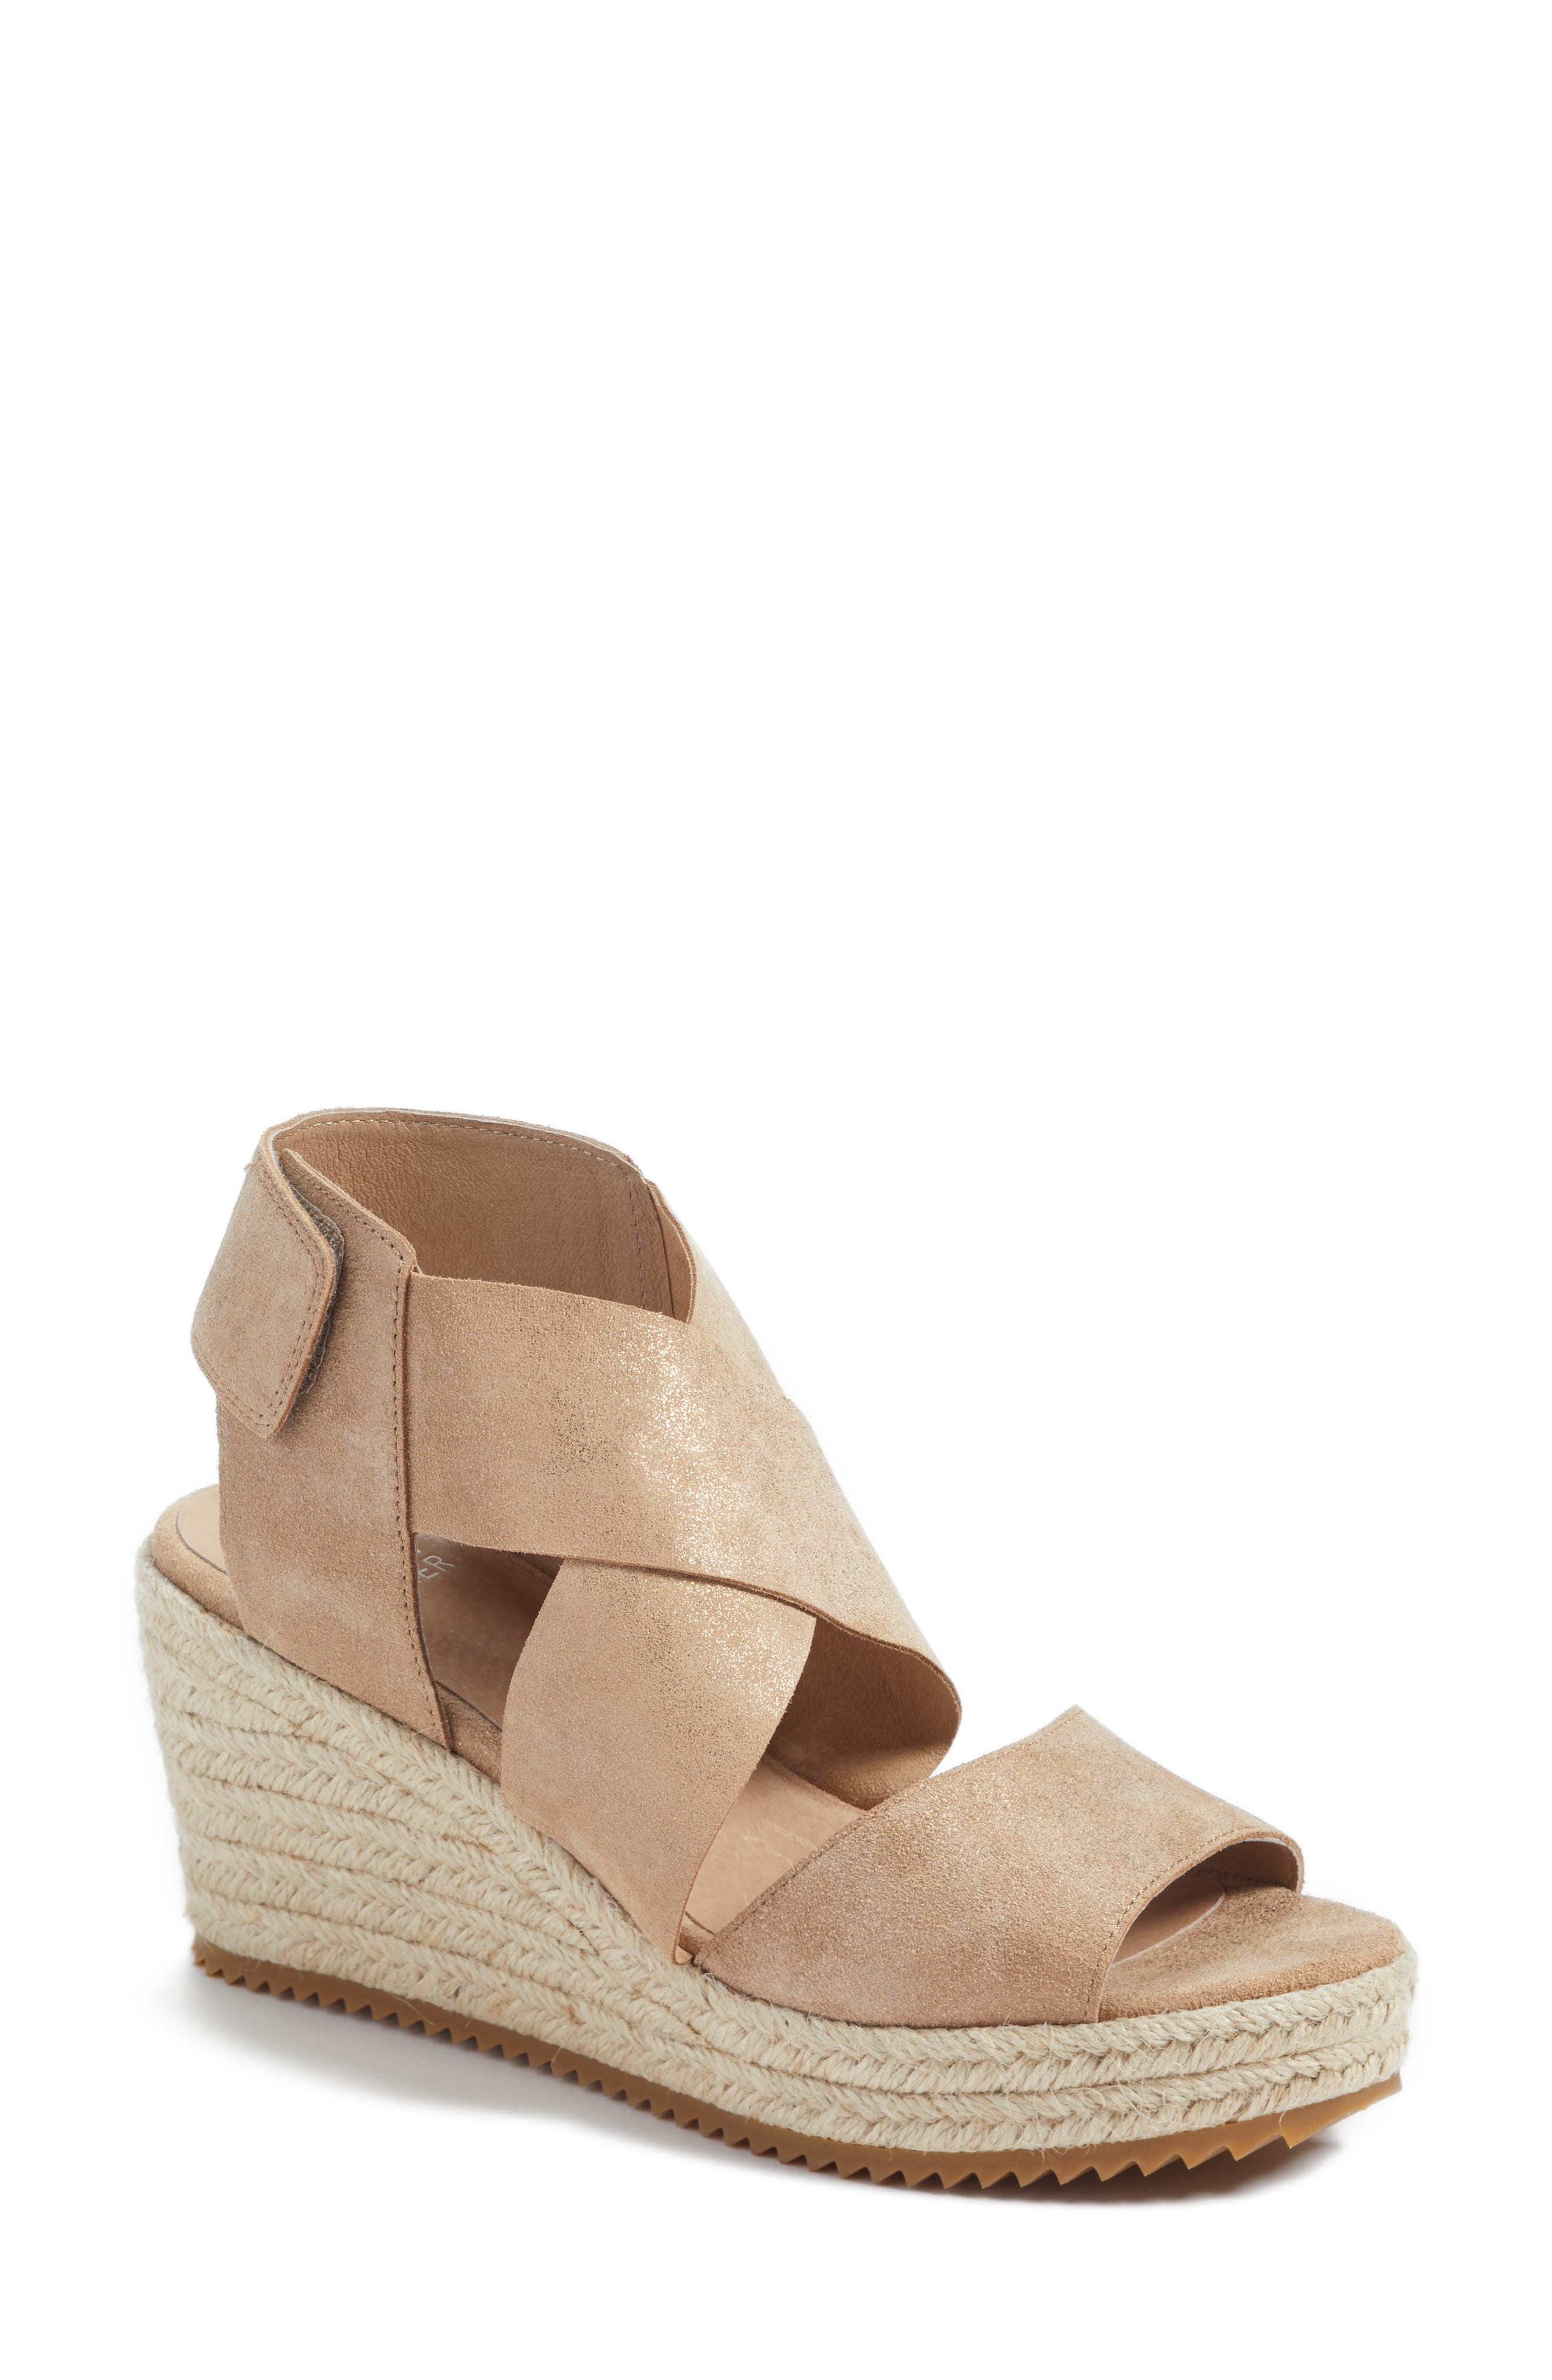 Main Image - Eileen Fisher 'Willow' Espadrille Wedge Sandal (Women)